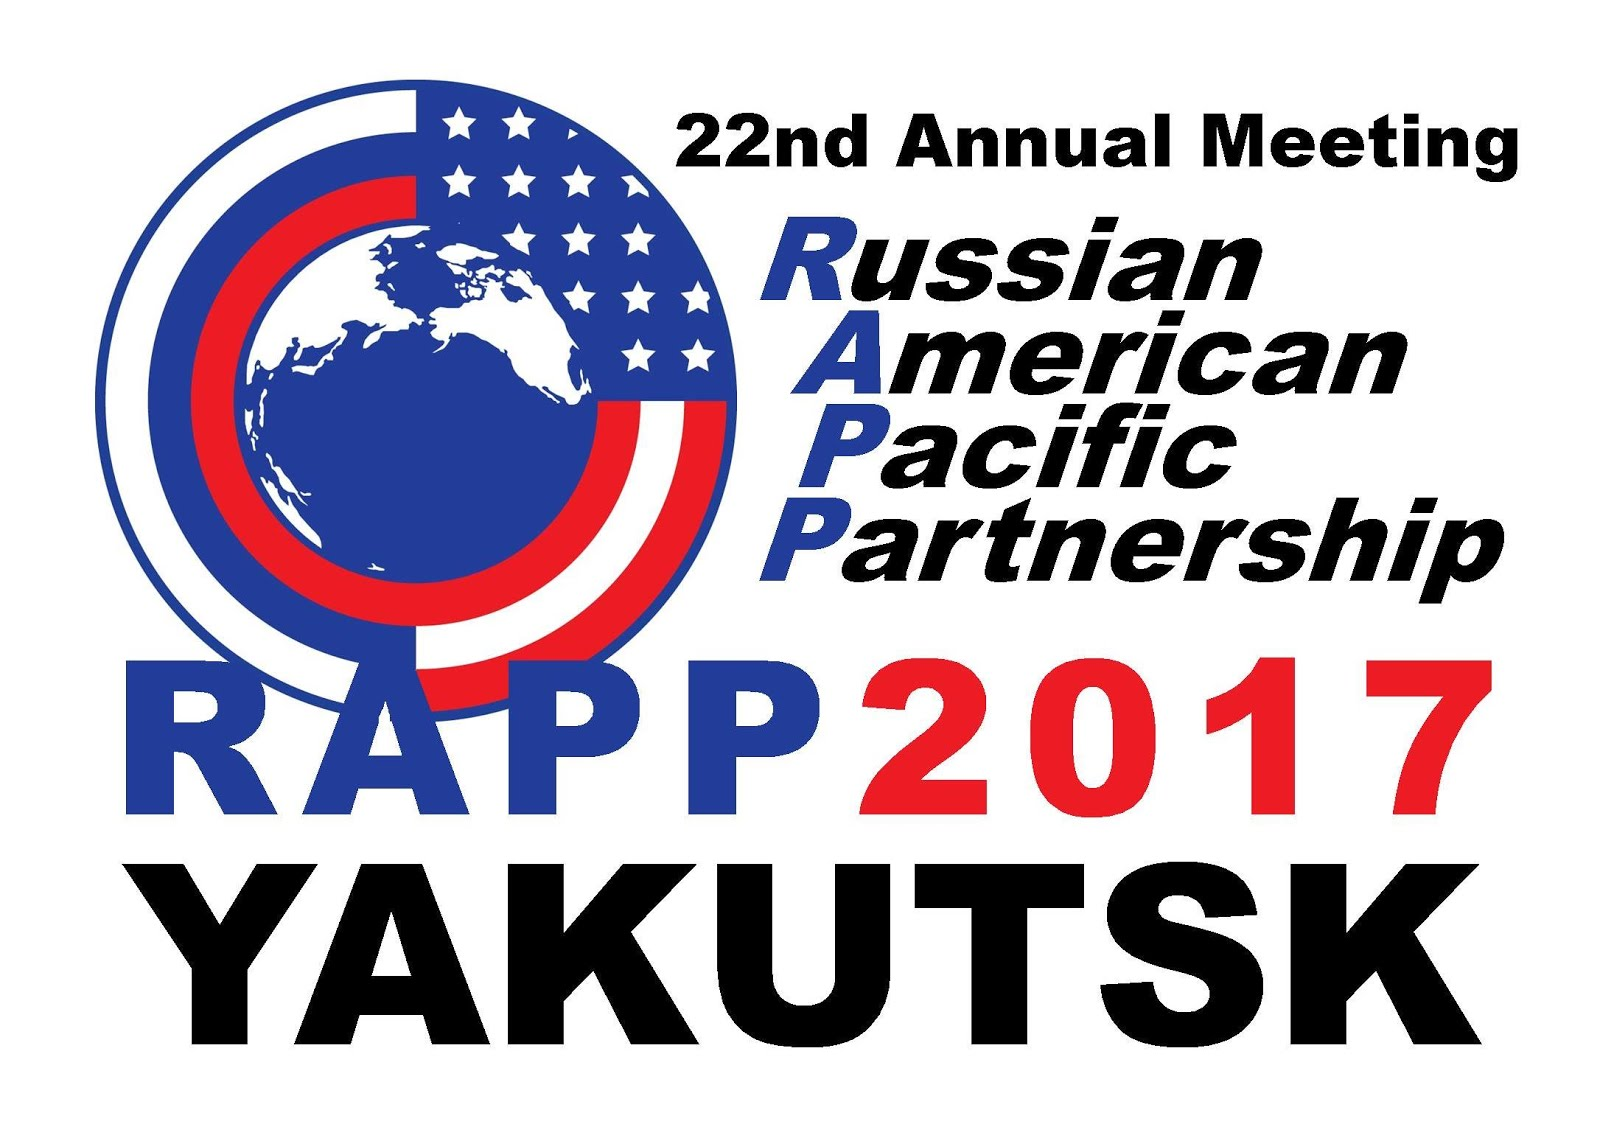 2017 RAPP 22nd Annual Meeting